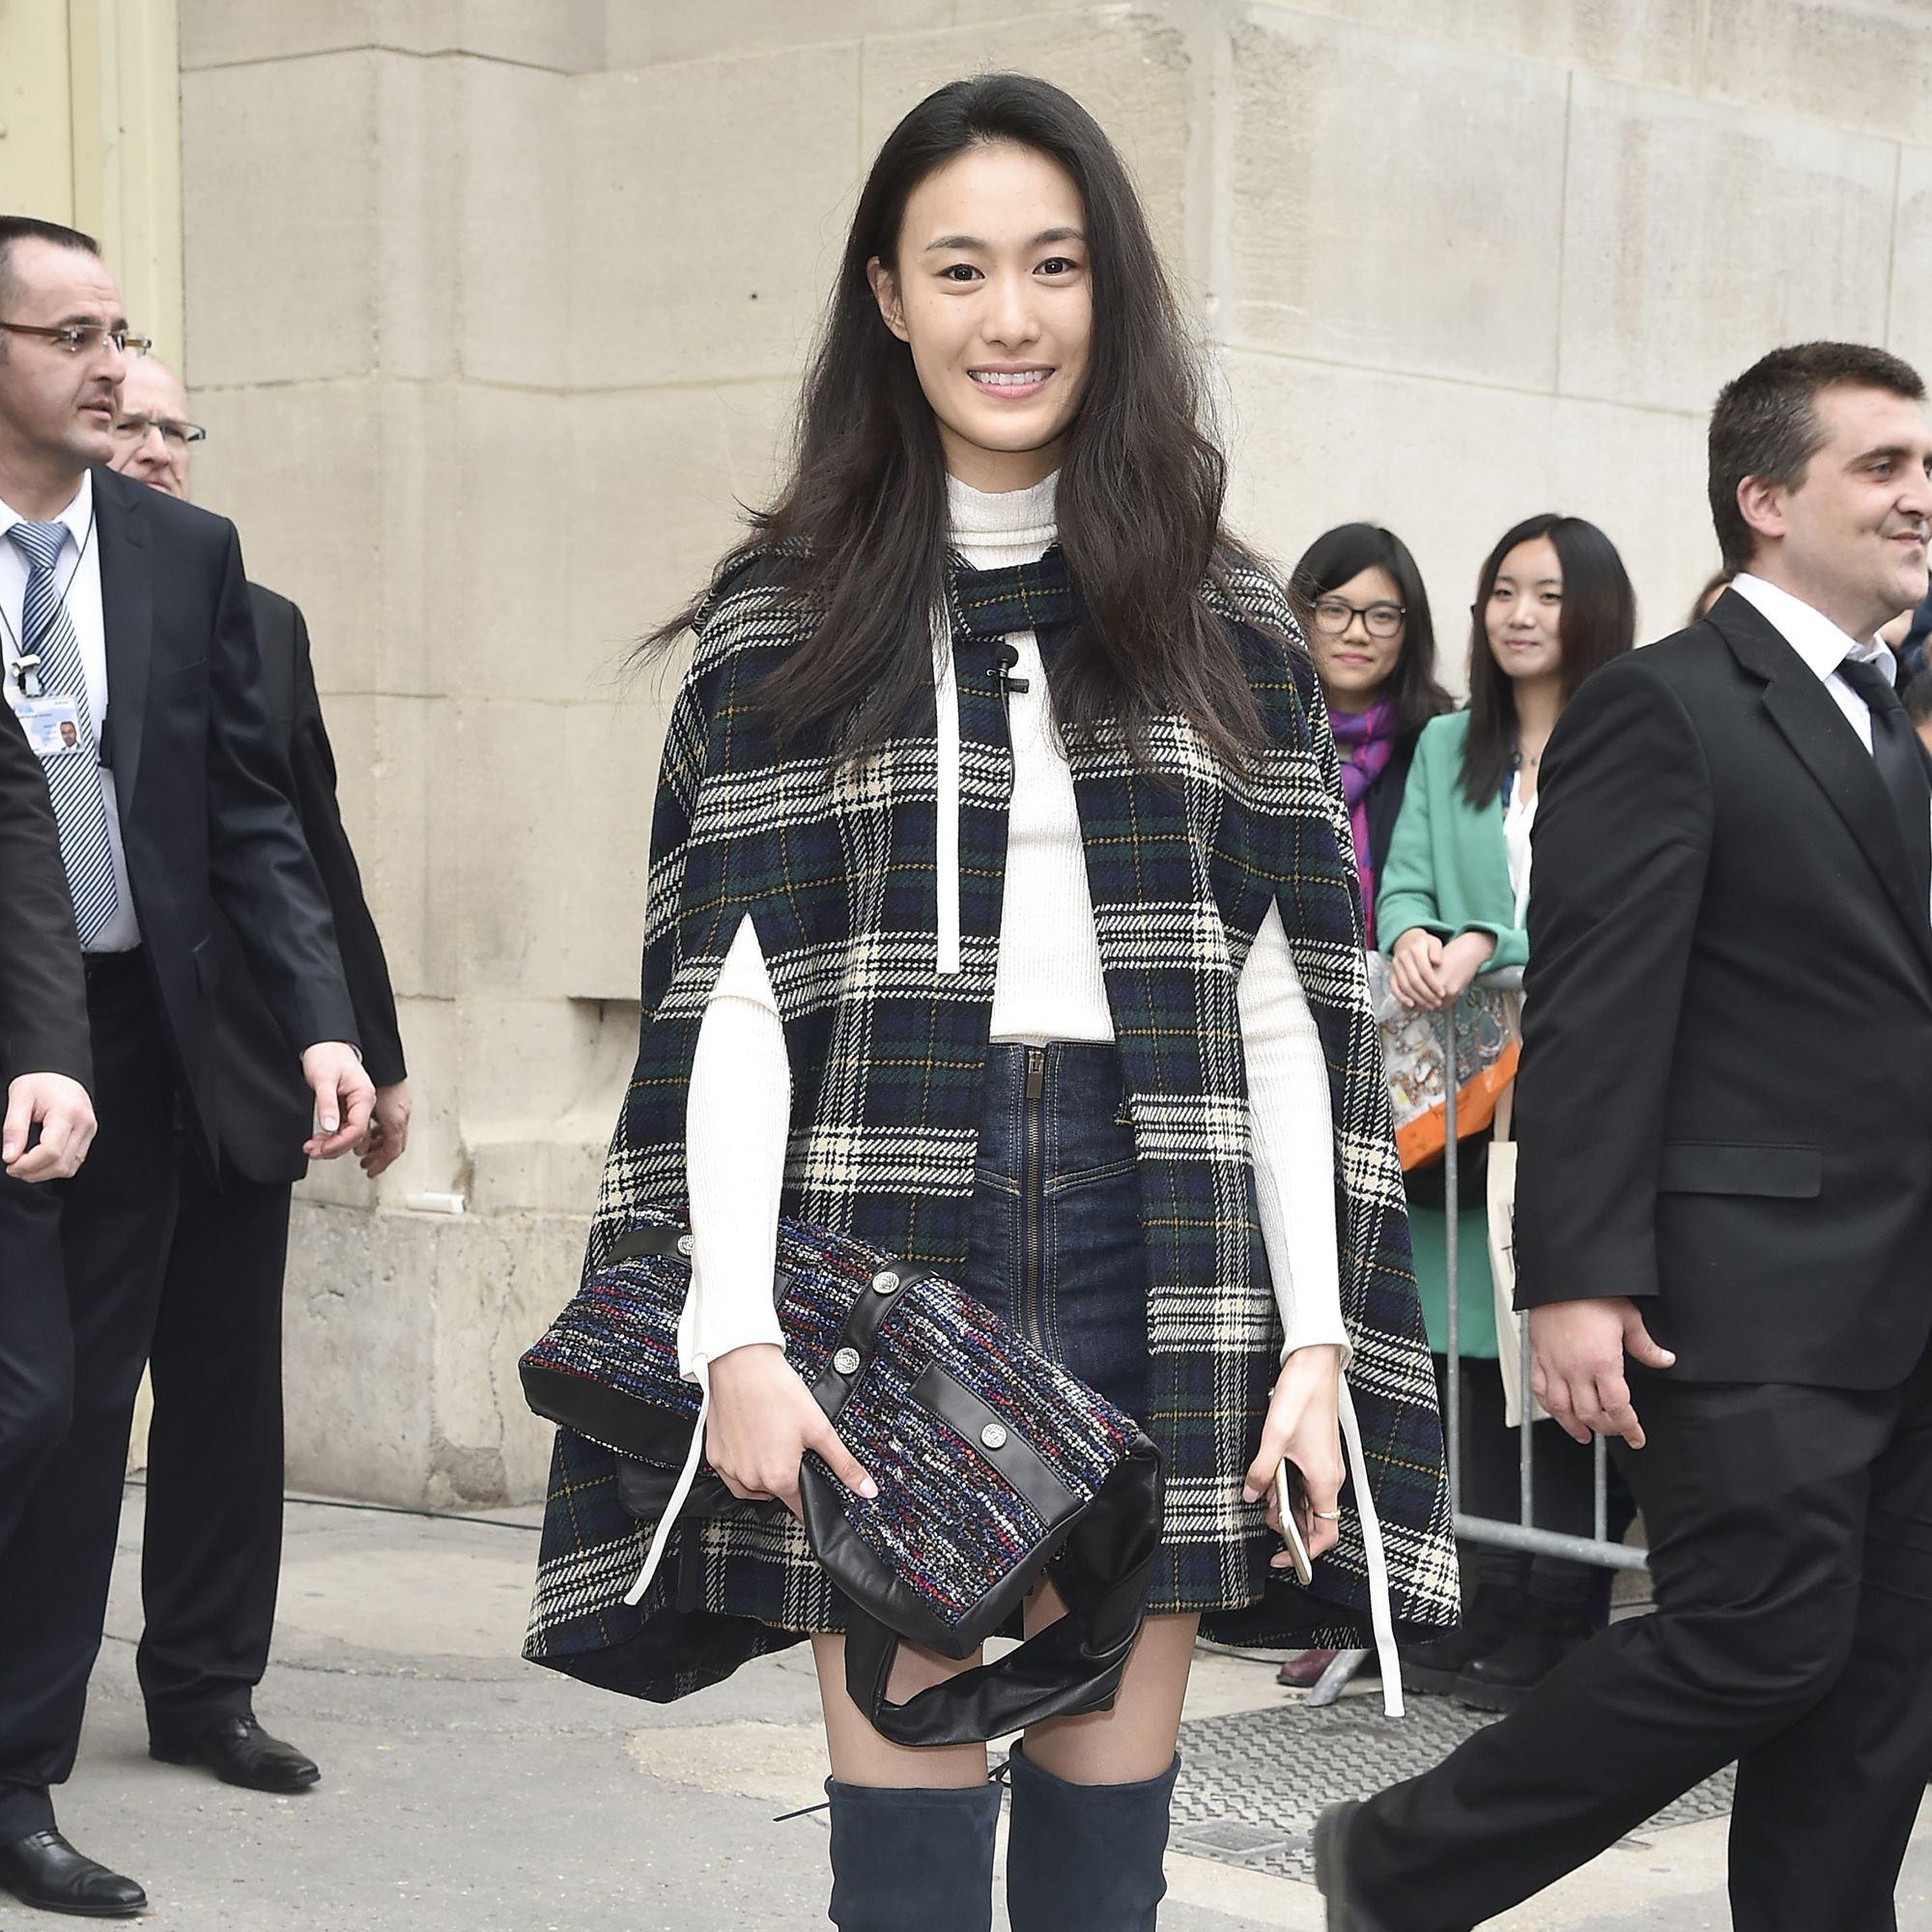 PARIS, FRANCE - MARCH 10:  Shu Pei Qin leaves the Chanel show as part of the Paris Fashion Week Womenswear Fall/Winter 2015/2016  on March 10, 2015 in Paris, France.  (Photo by Jacopo Raule/Getty Images for Chanel)